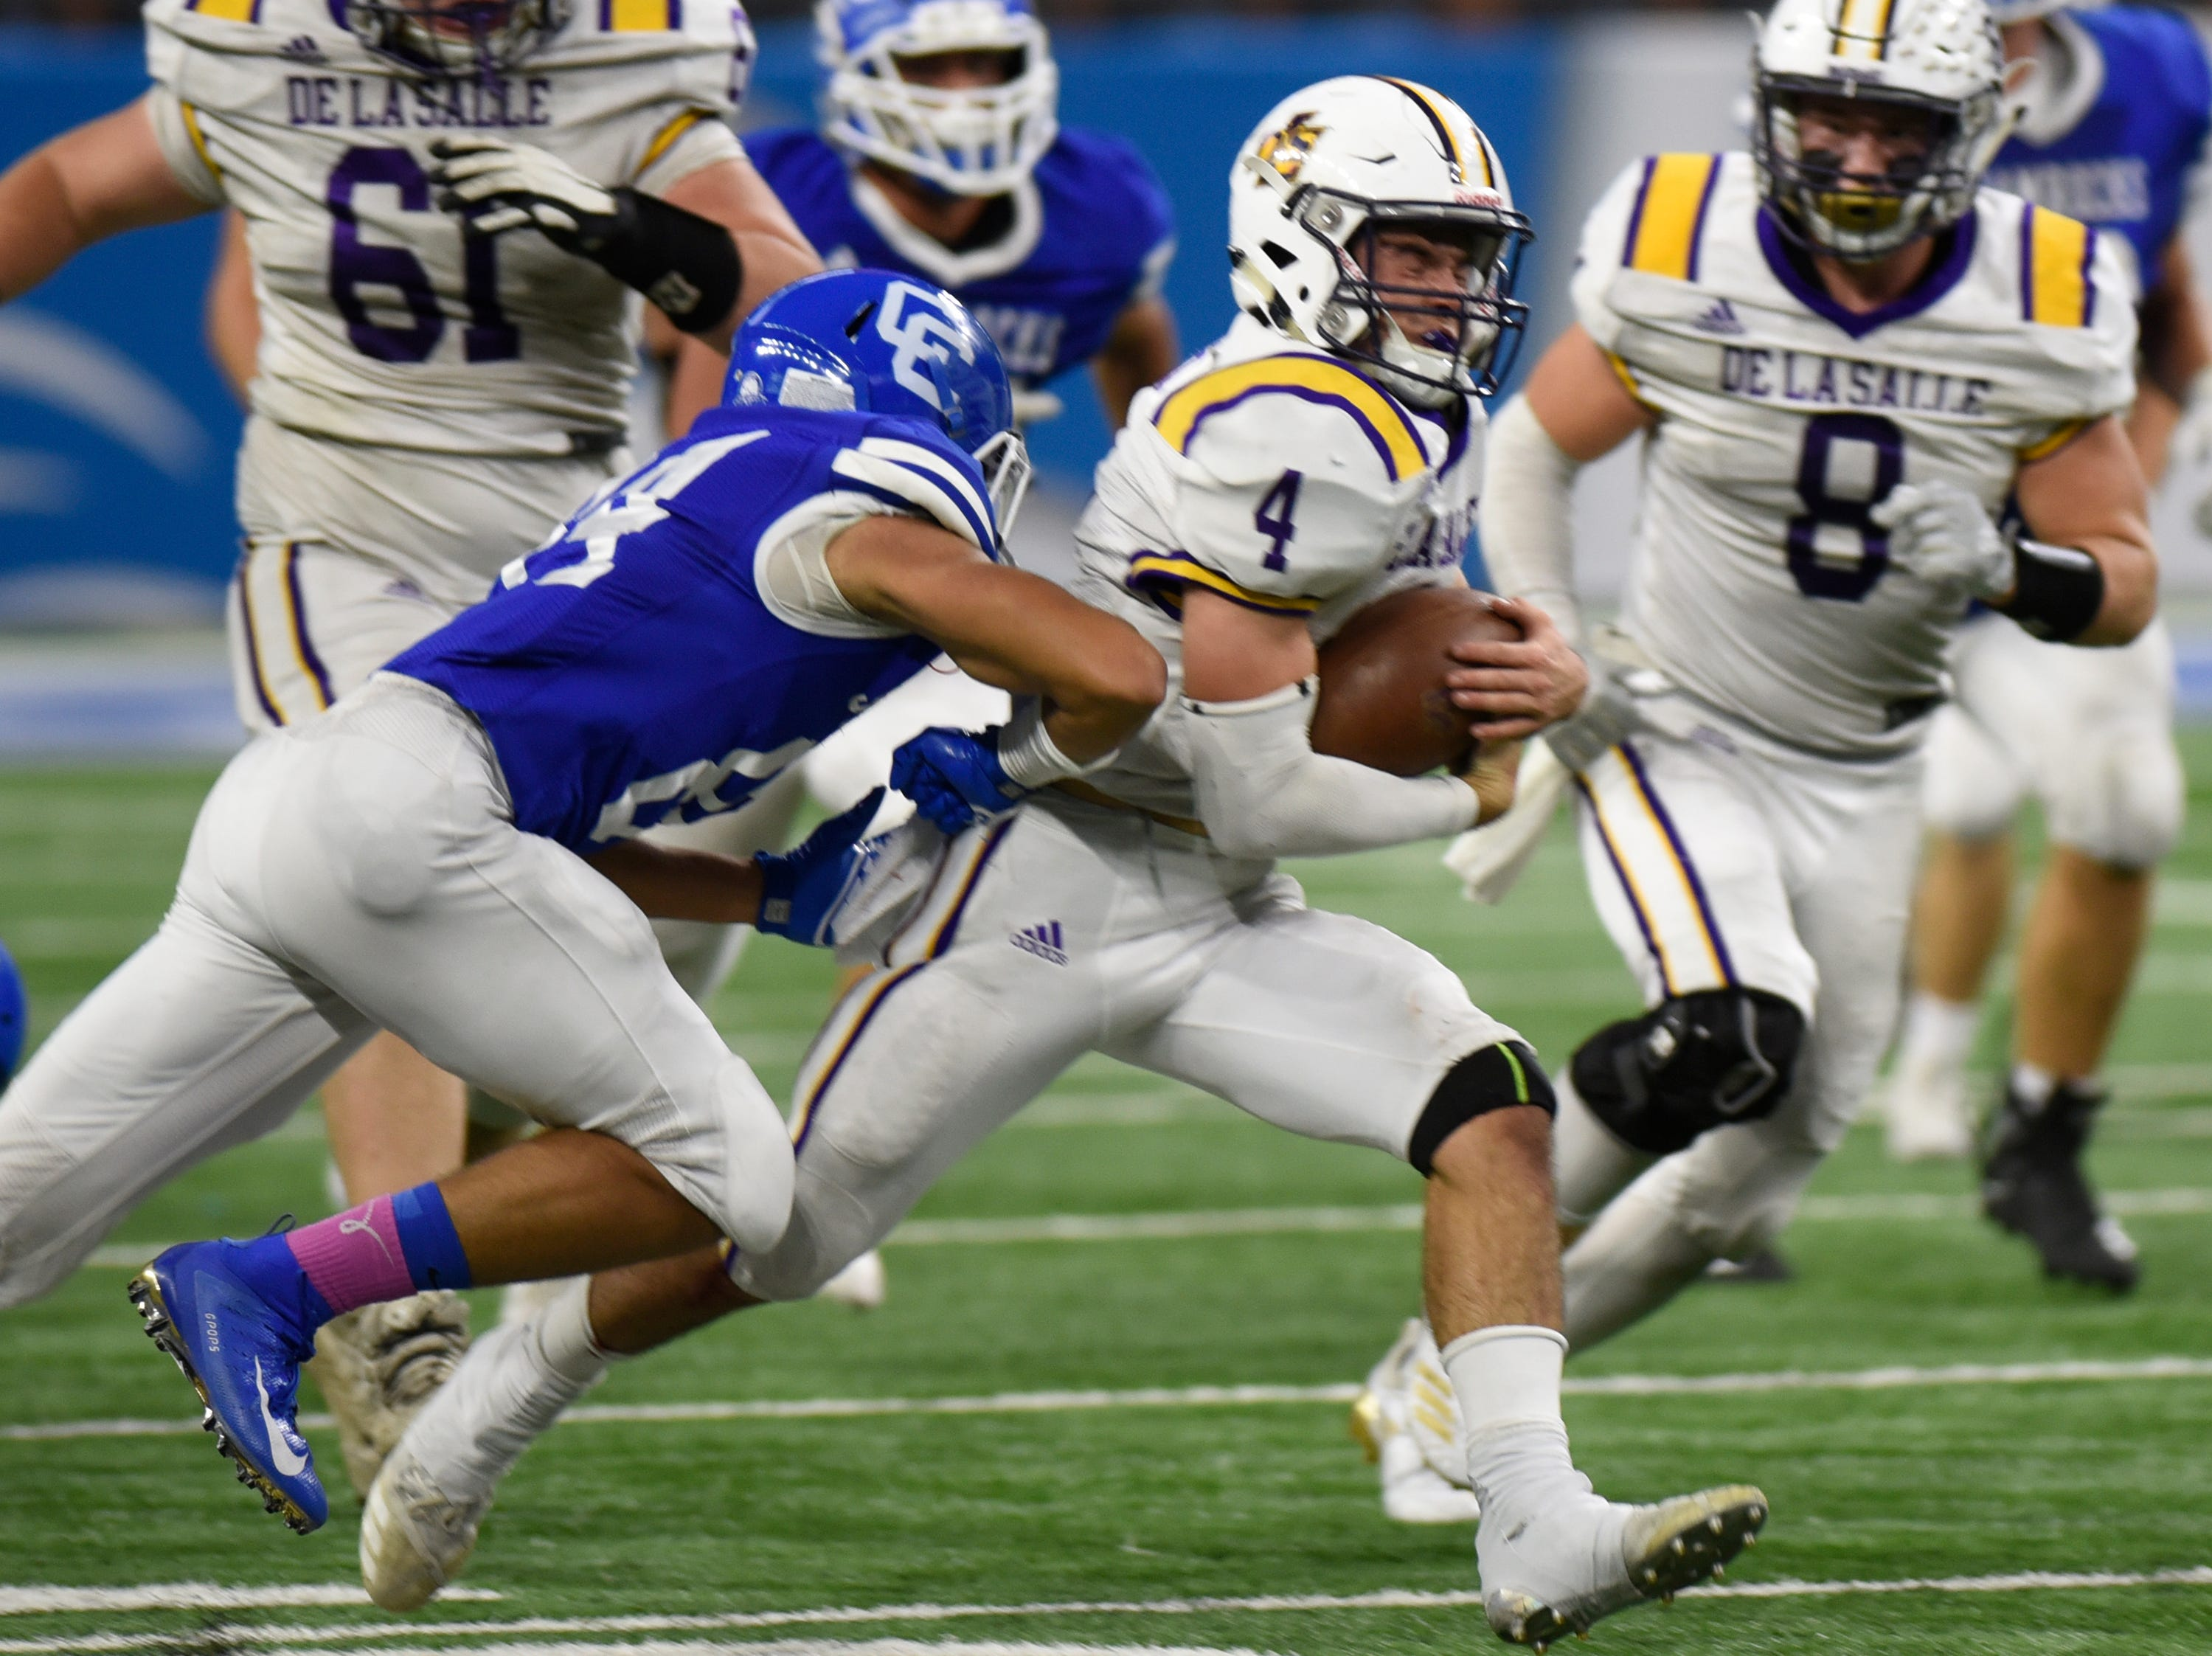 Detroit Catholic Central's Jonathan Brewer (84) can't bring down Warren De La Salle quarterback Nolan Schultz (4) as he runs 70 yards for a TD during the Catholic League Prep Bowl AB Division championship game at Ford Field Oct. 20, 2018.